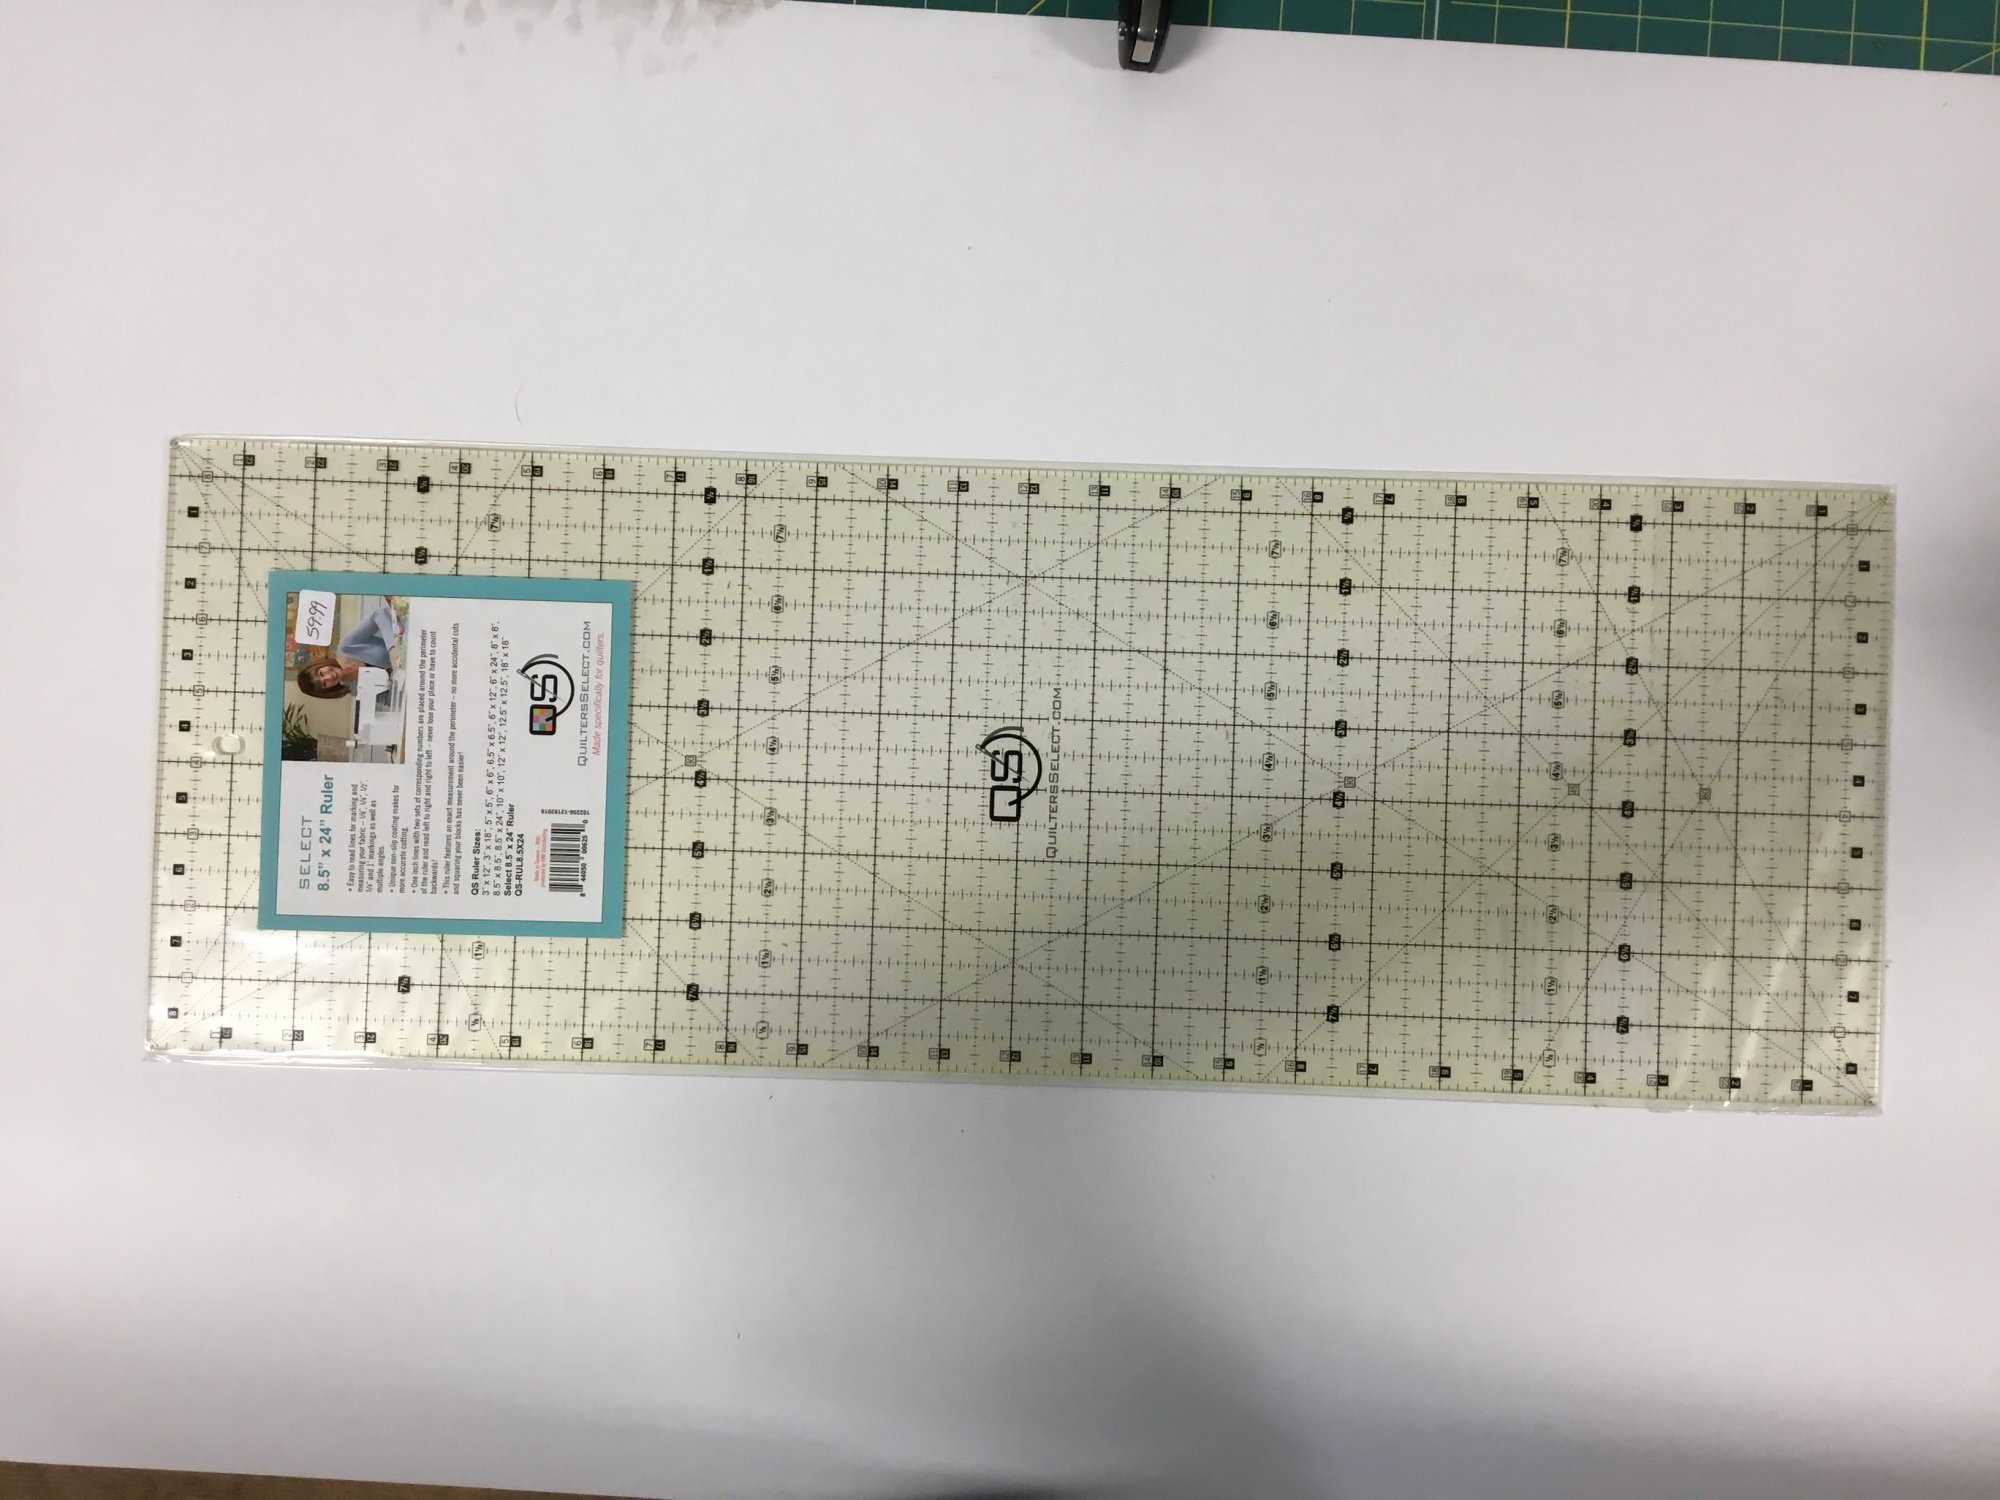 Quilter's Select 8.5 x 24 ruler